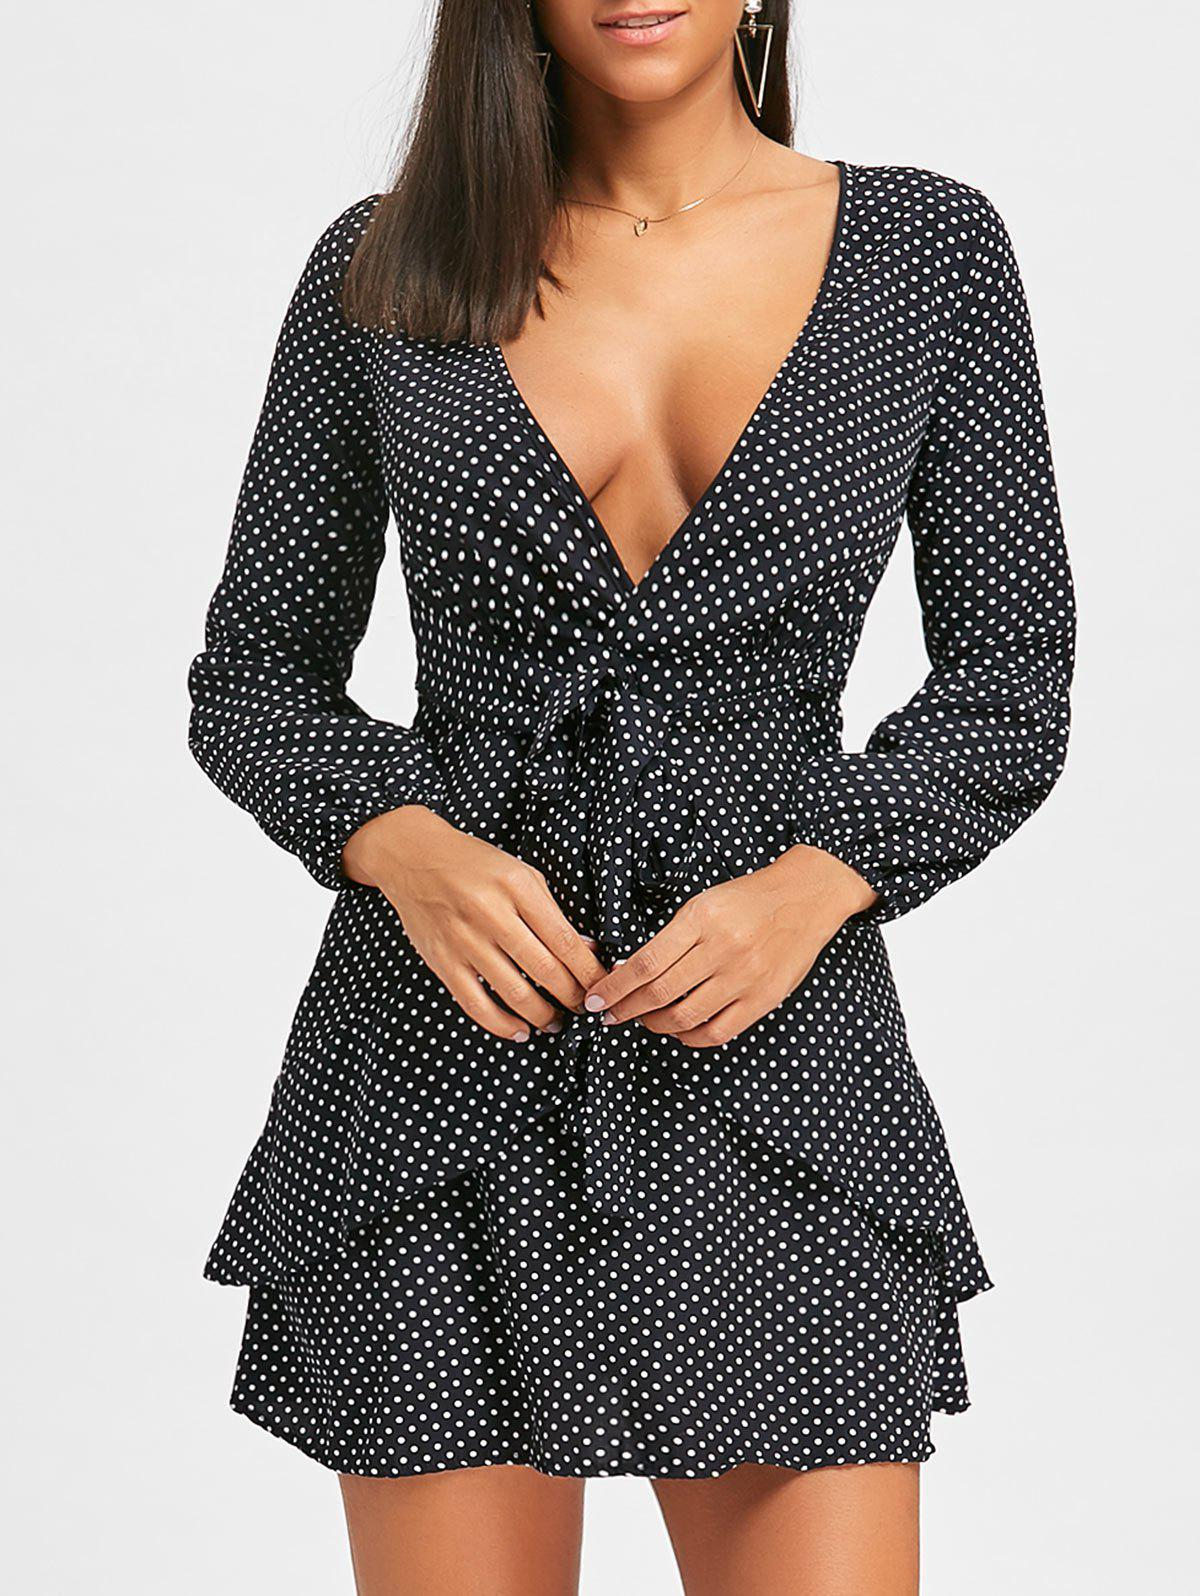 Puff Sleeve Low Cut Polka Dot Mini DressWOMEN<br><br>Size: M; Color: BLACK; Style: Casual; Material: Polyester; Silhouette: A-Line; Dresses Length: Mini; Neckline: Plunging Neck; Sleeve Type: Puff Sleeve; Sleeve Length: Long Sleeves; Pattern Type: Polka Dot; With Belt: No; Season: Fall,Spring; Weight: 0.2500kg; Package Contents: 1 x Dress;